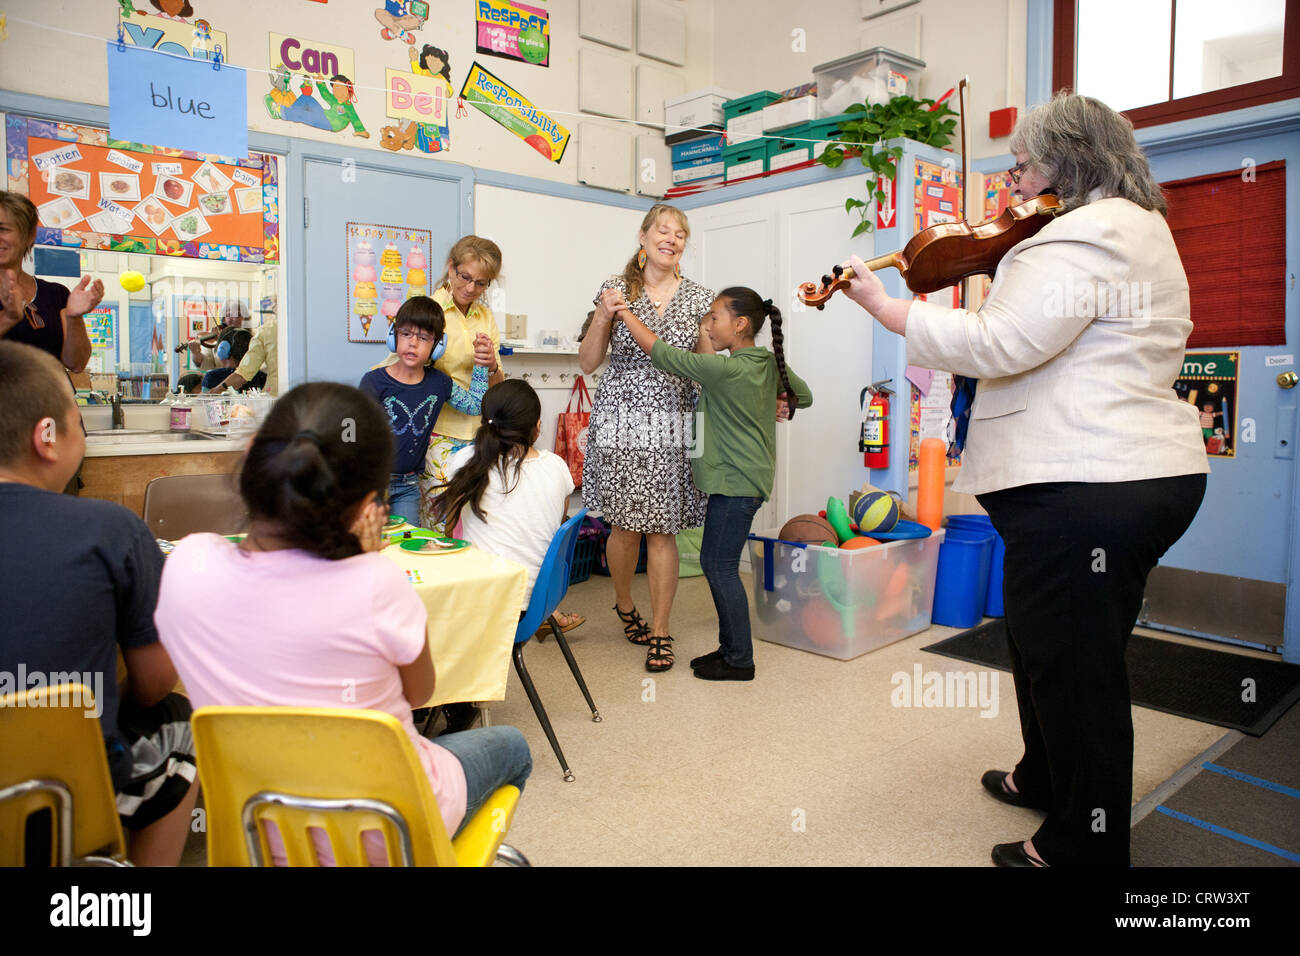 Celebration in a special education classroom, USA, teachers play music and dance with students. - Stock Image